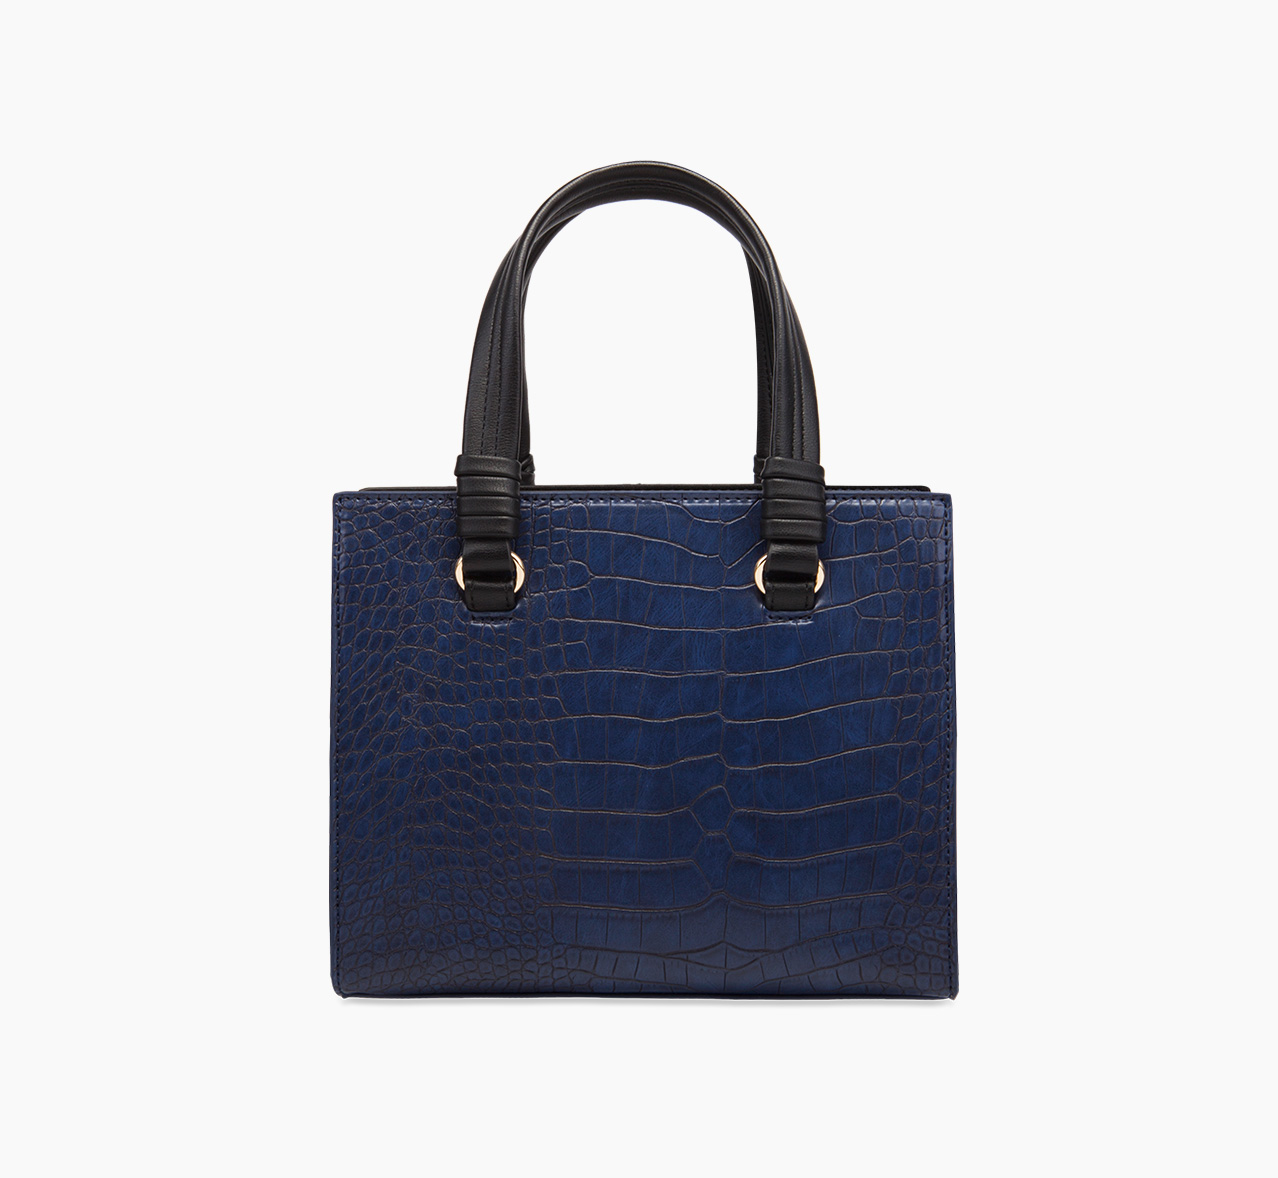 tote pauls boutique navy pbn128170 Navy